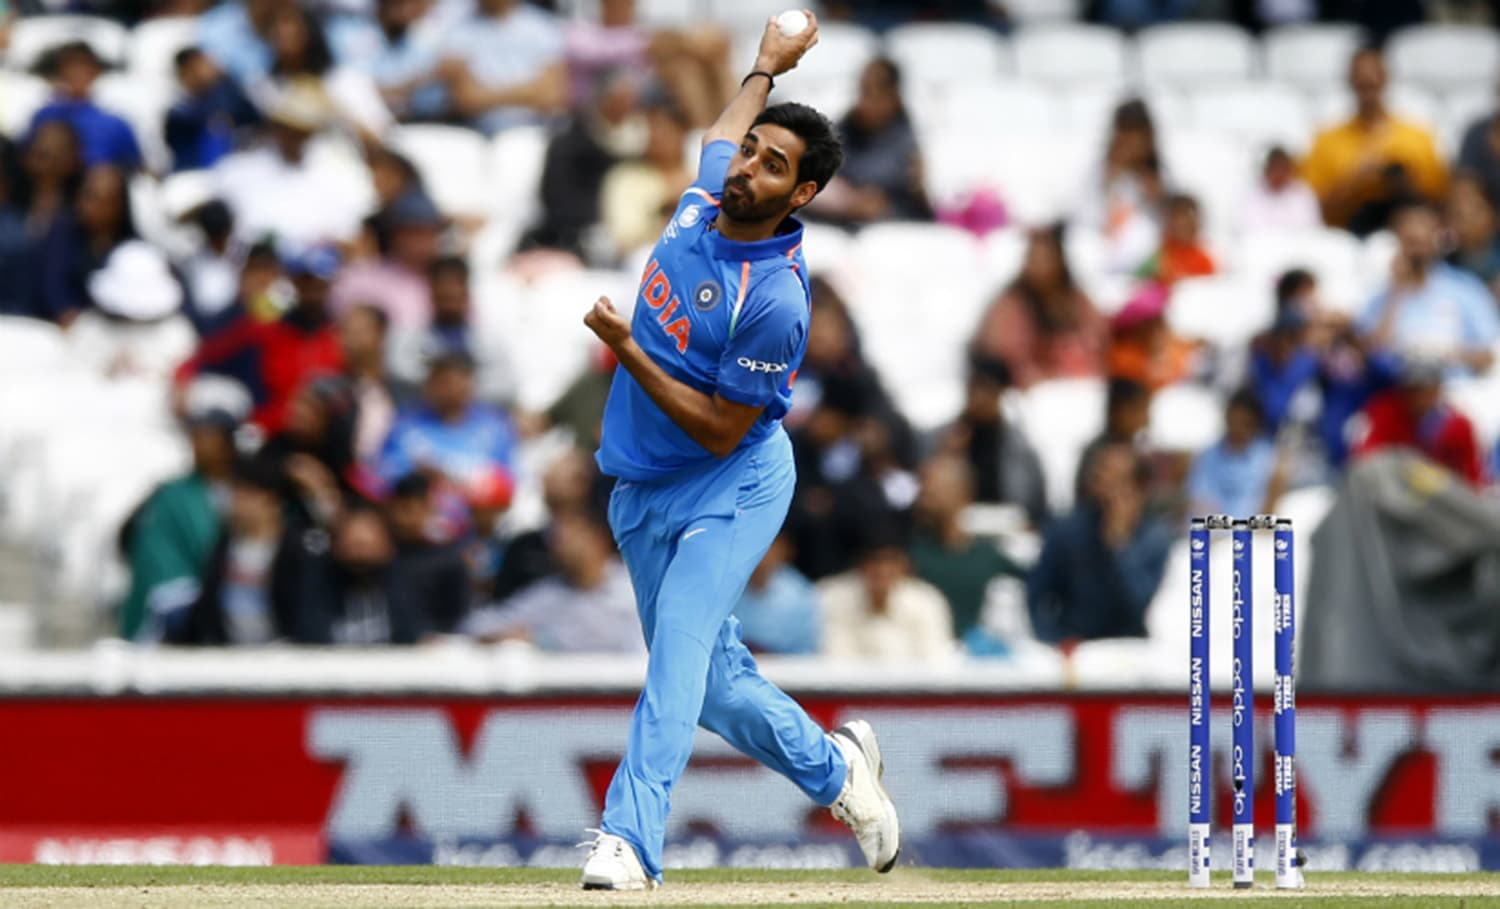 Kumar has bowled 22.3 overs across three games in the tournament taking four wickets for 100 runs at a very decent economy rate of 4.44 – Photo: Reuters.